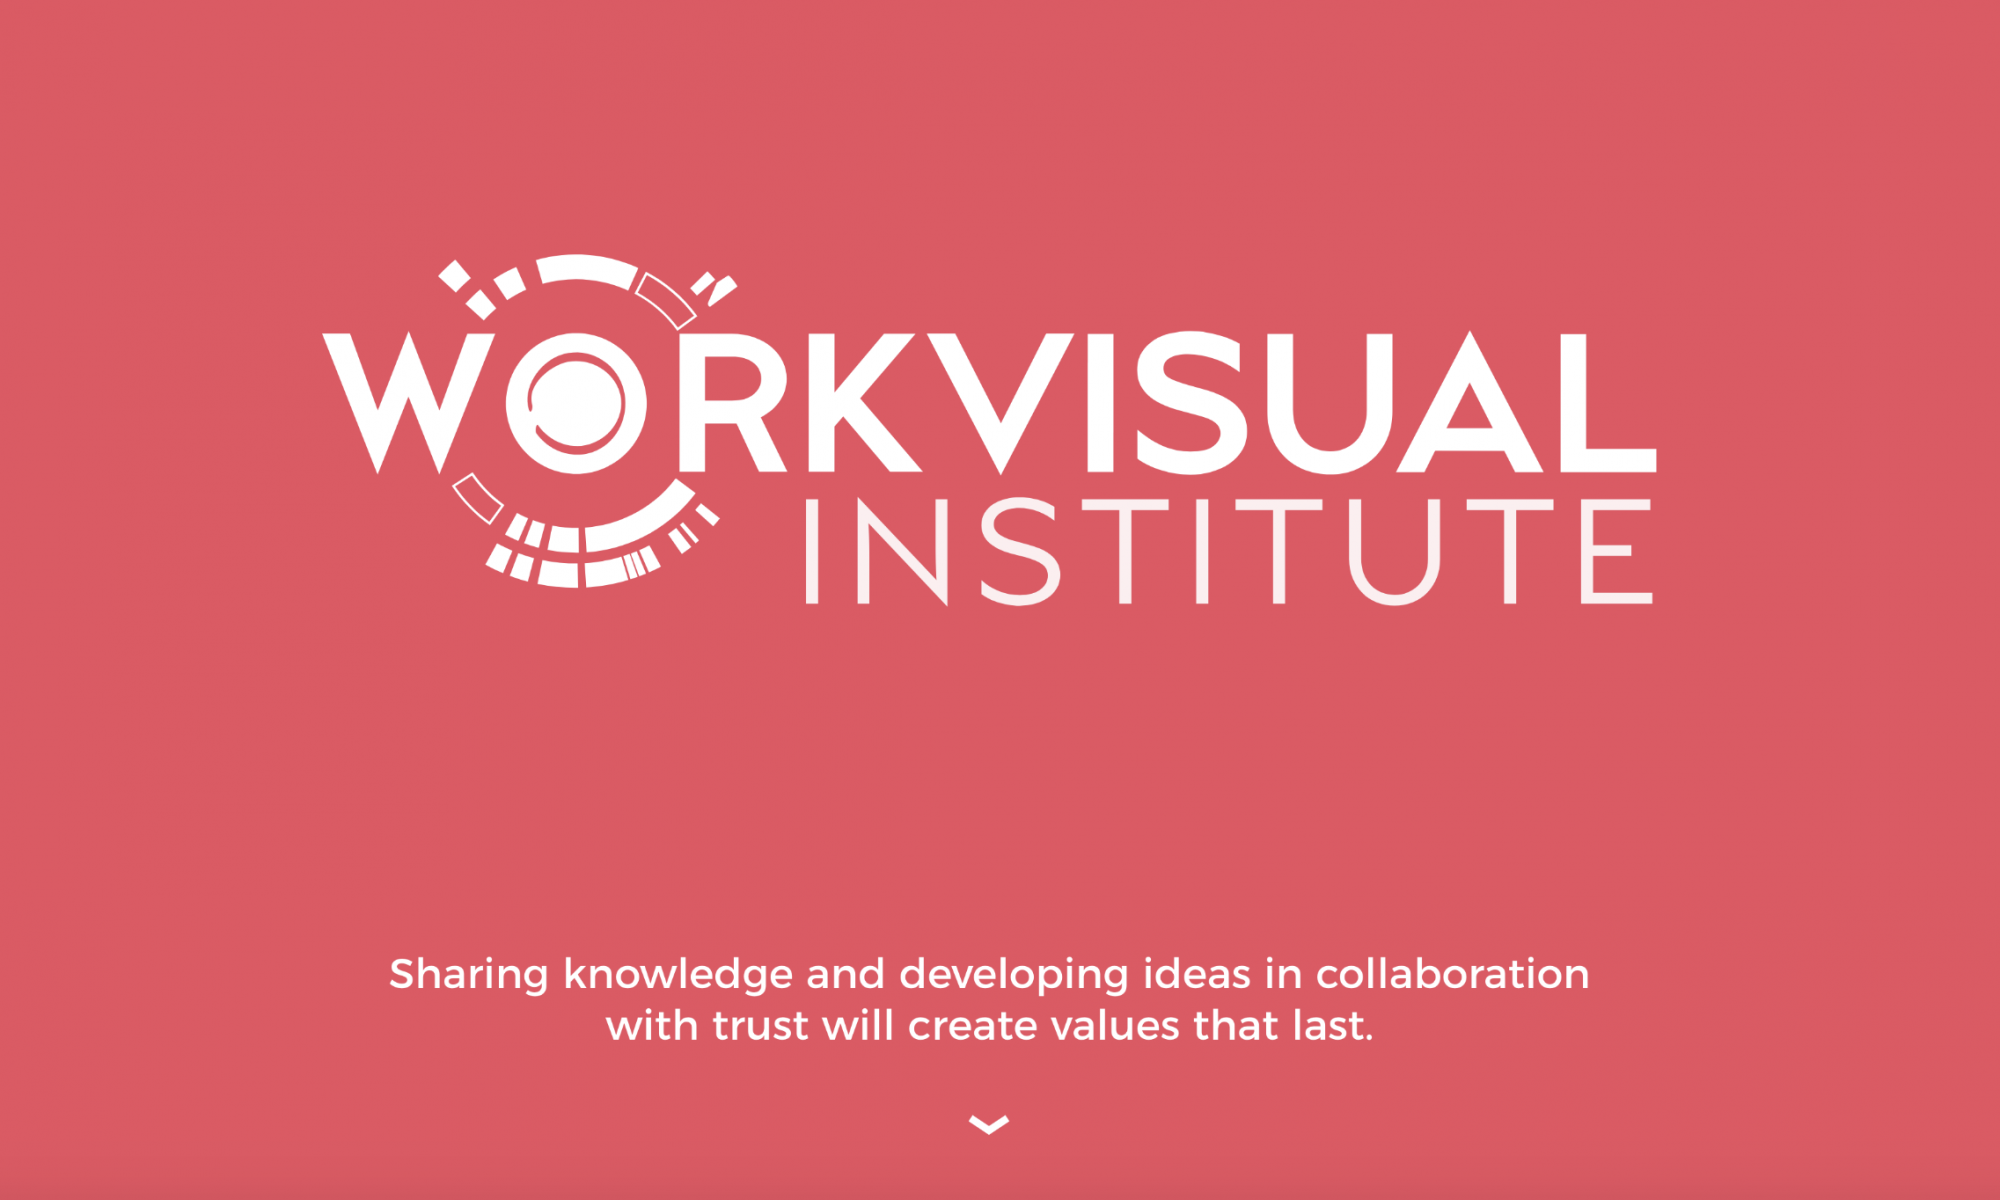 Workvisual Institute